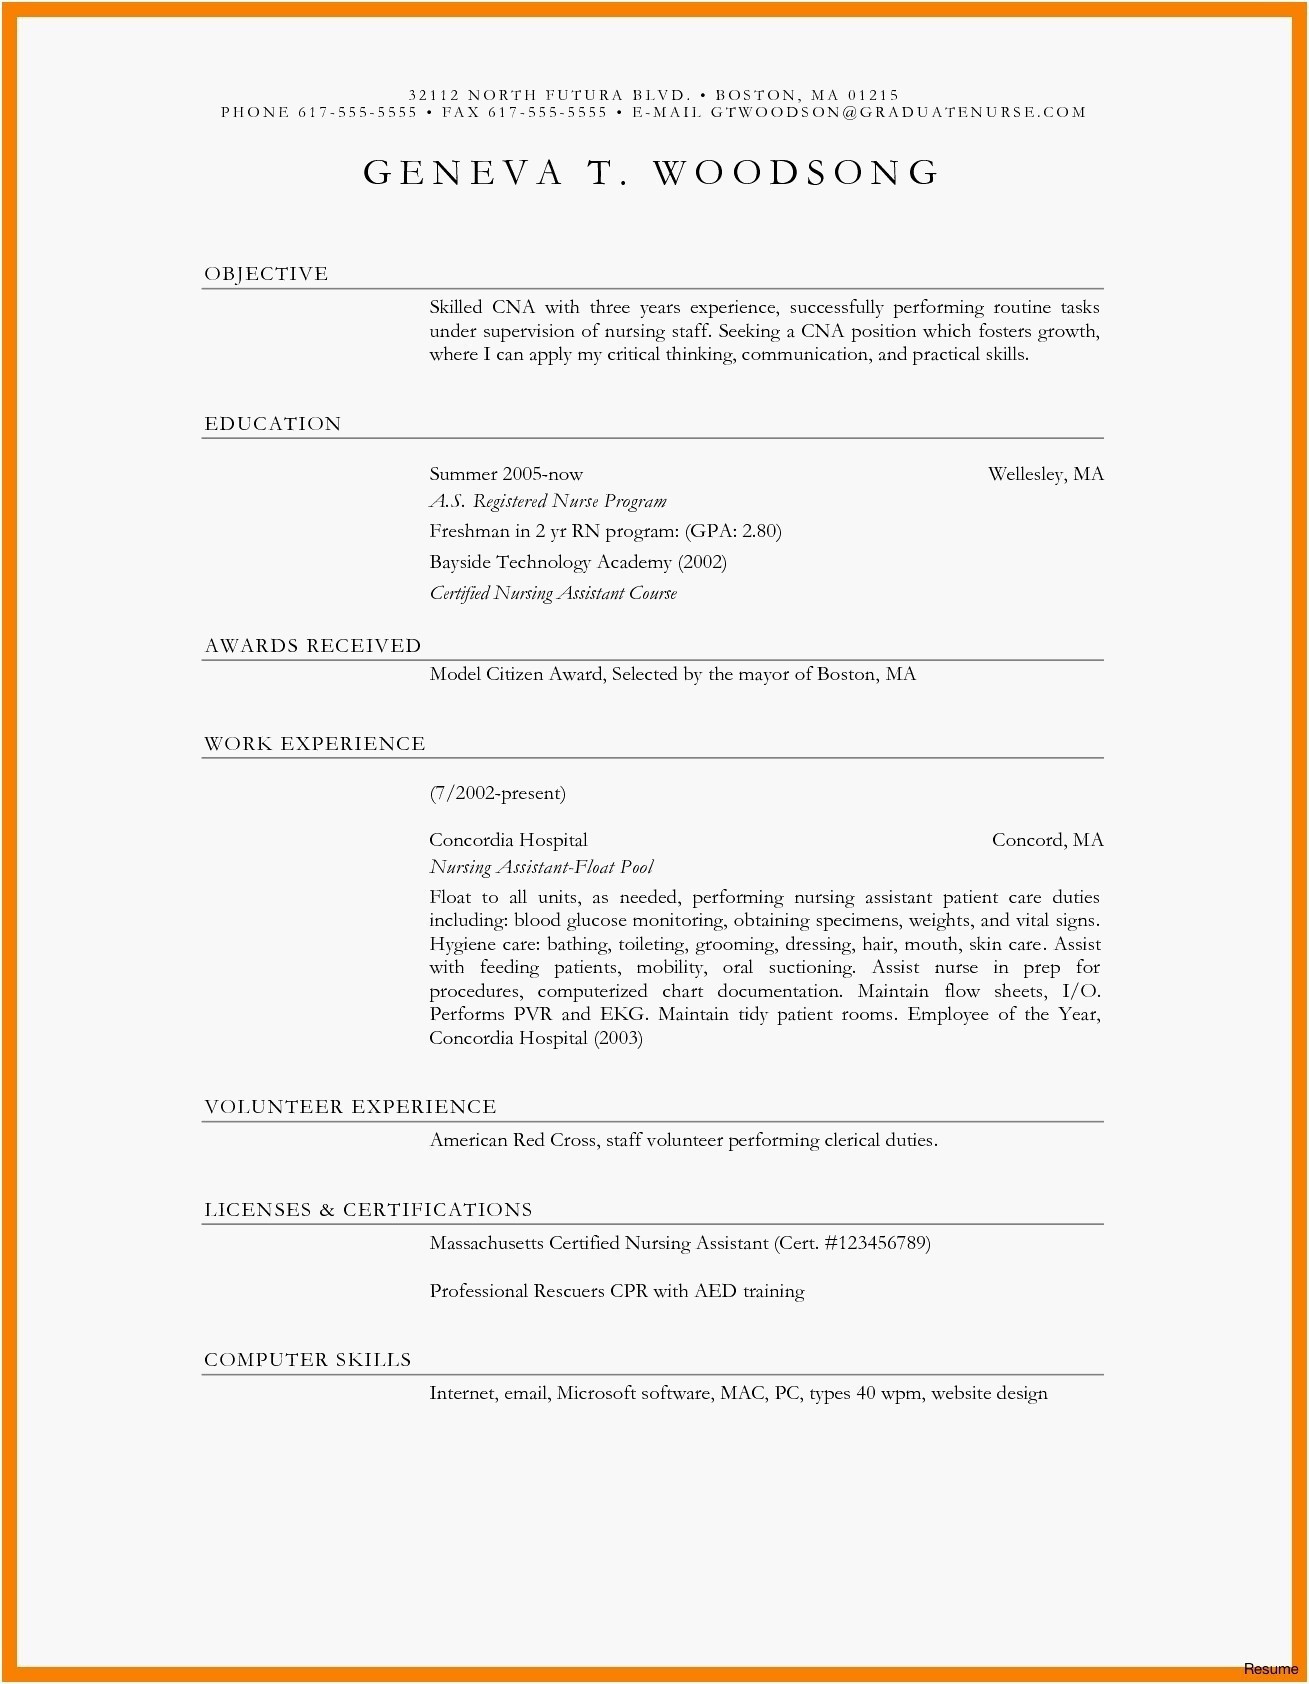 Professional Resume Cover Letter - Fice Job Cover Letter Cover Letters for Resume Awesome Job Cover